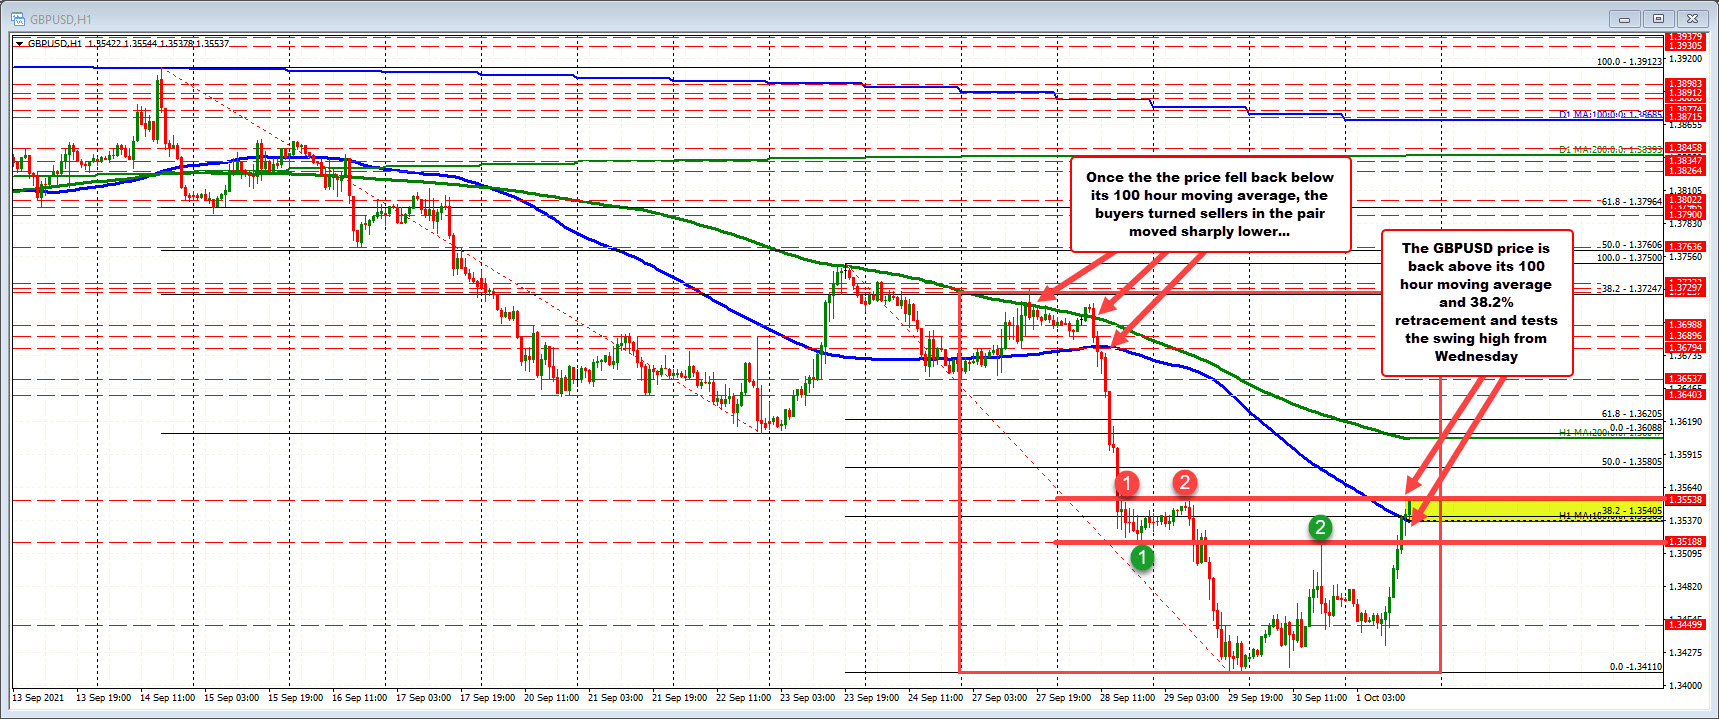 GBPUSD moves above the 100 hour MA